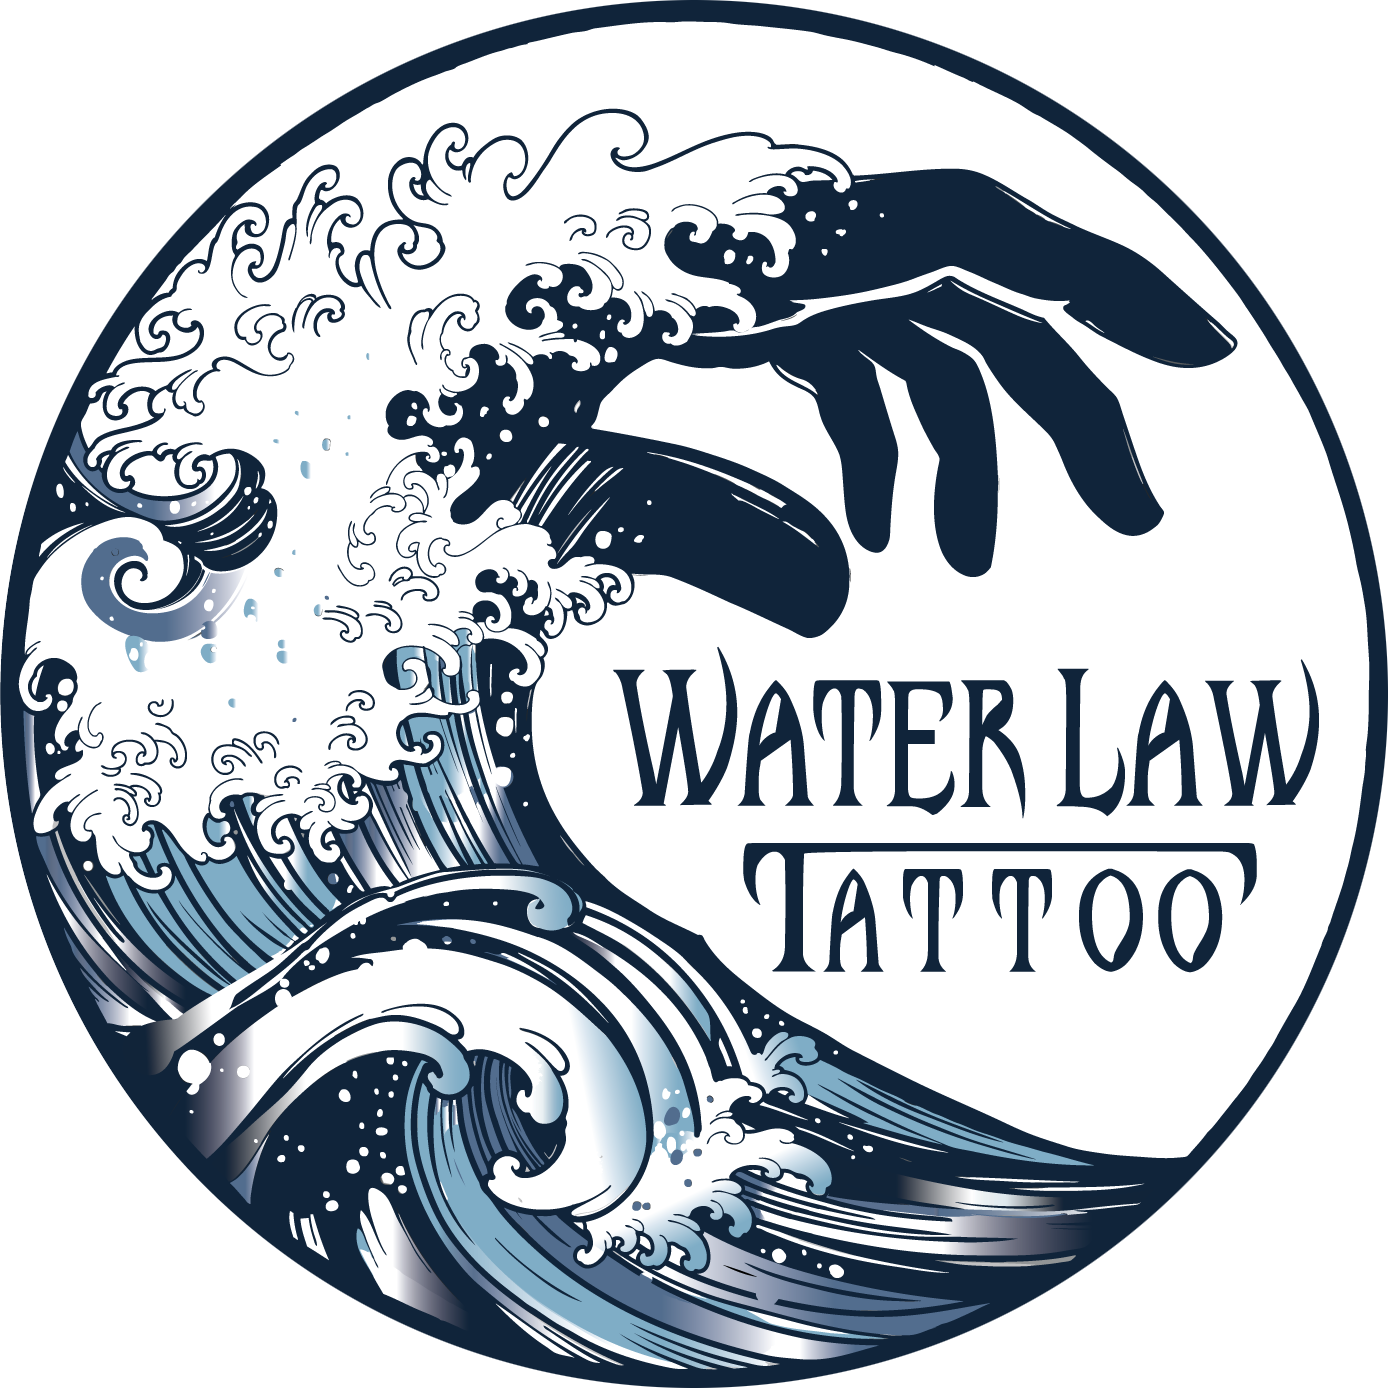 Water Law Tattoo